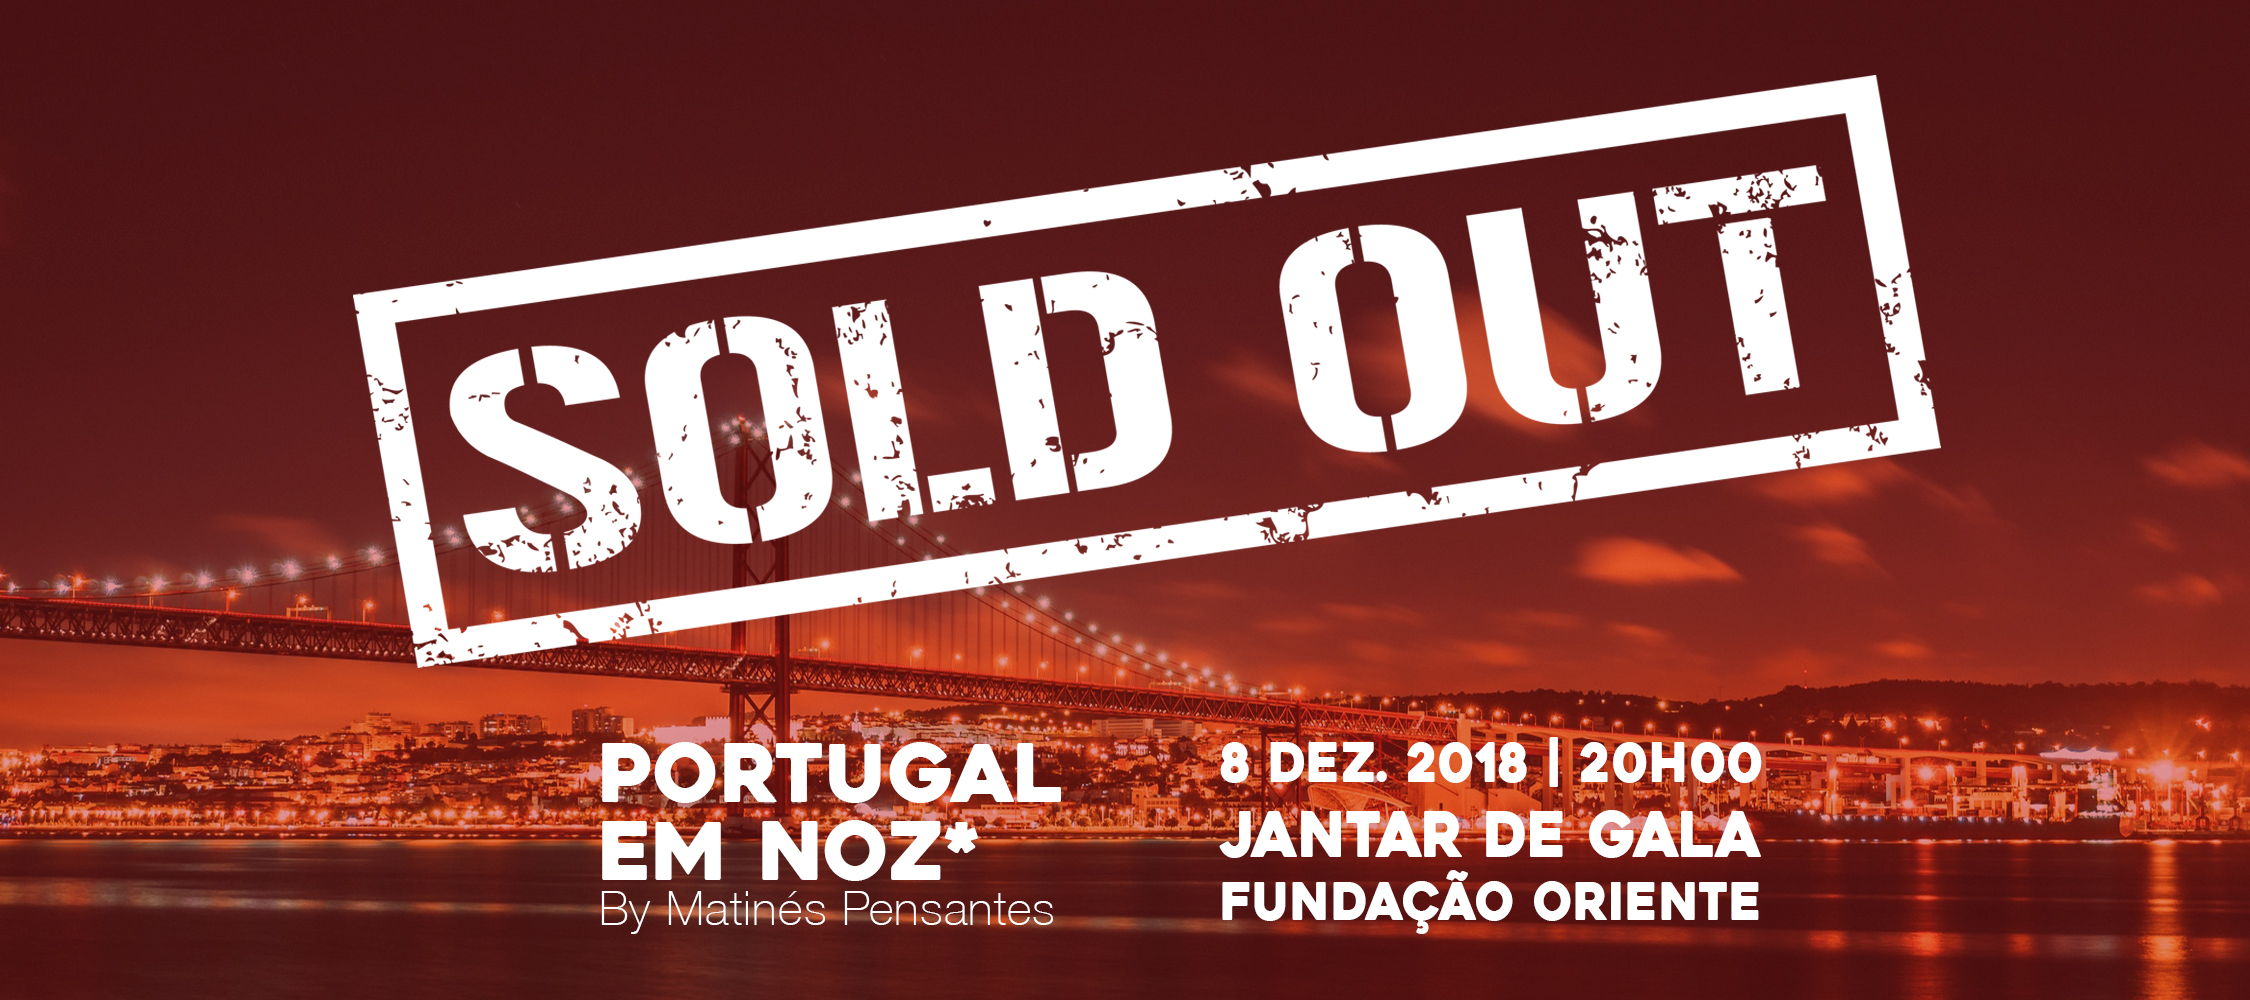 matines-pensantes-site-sold-out